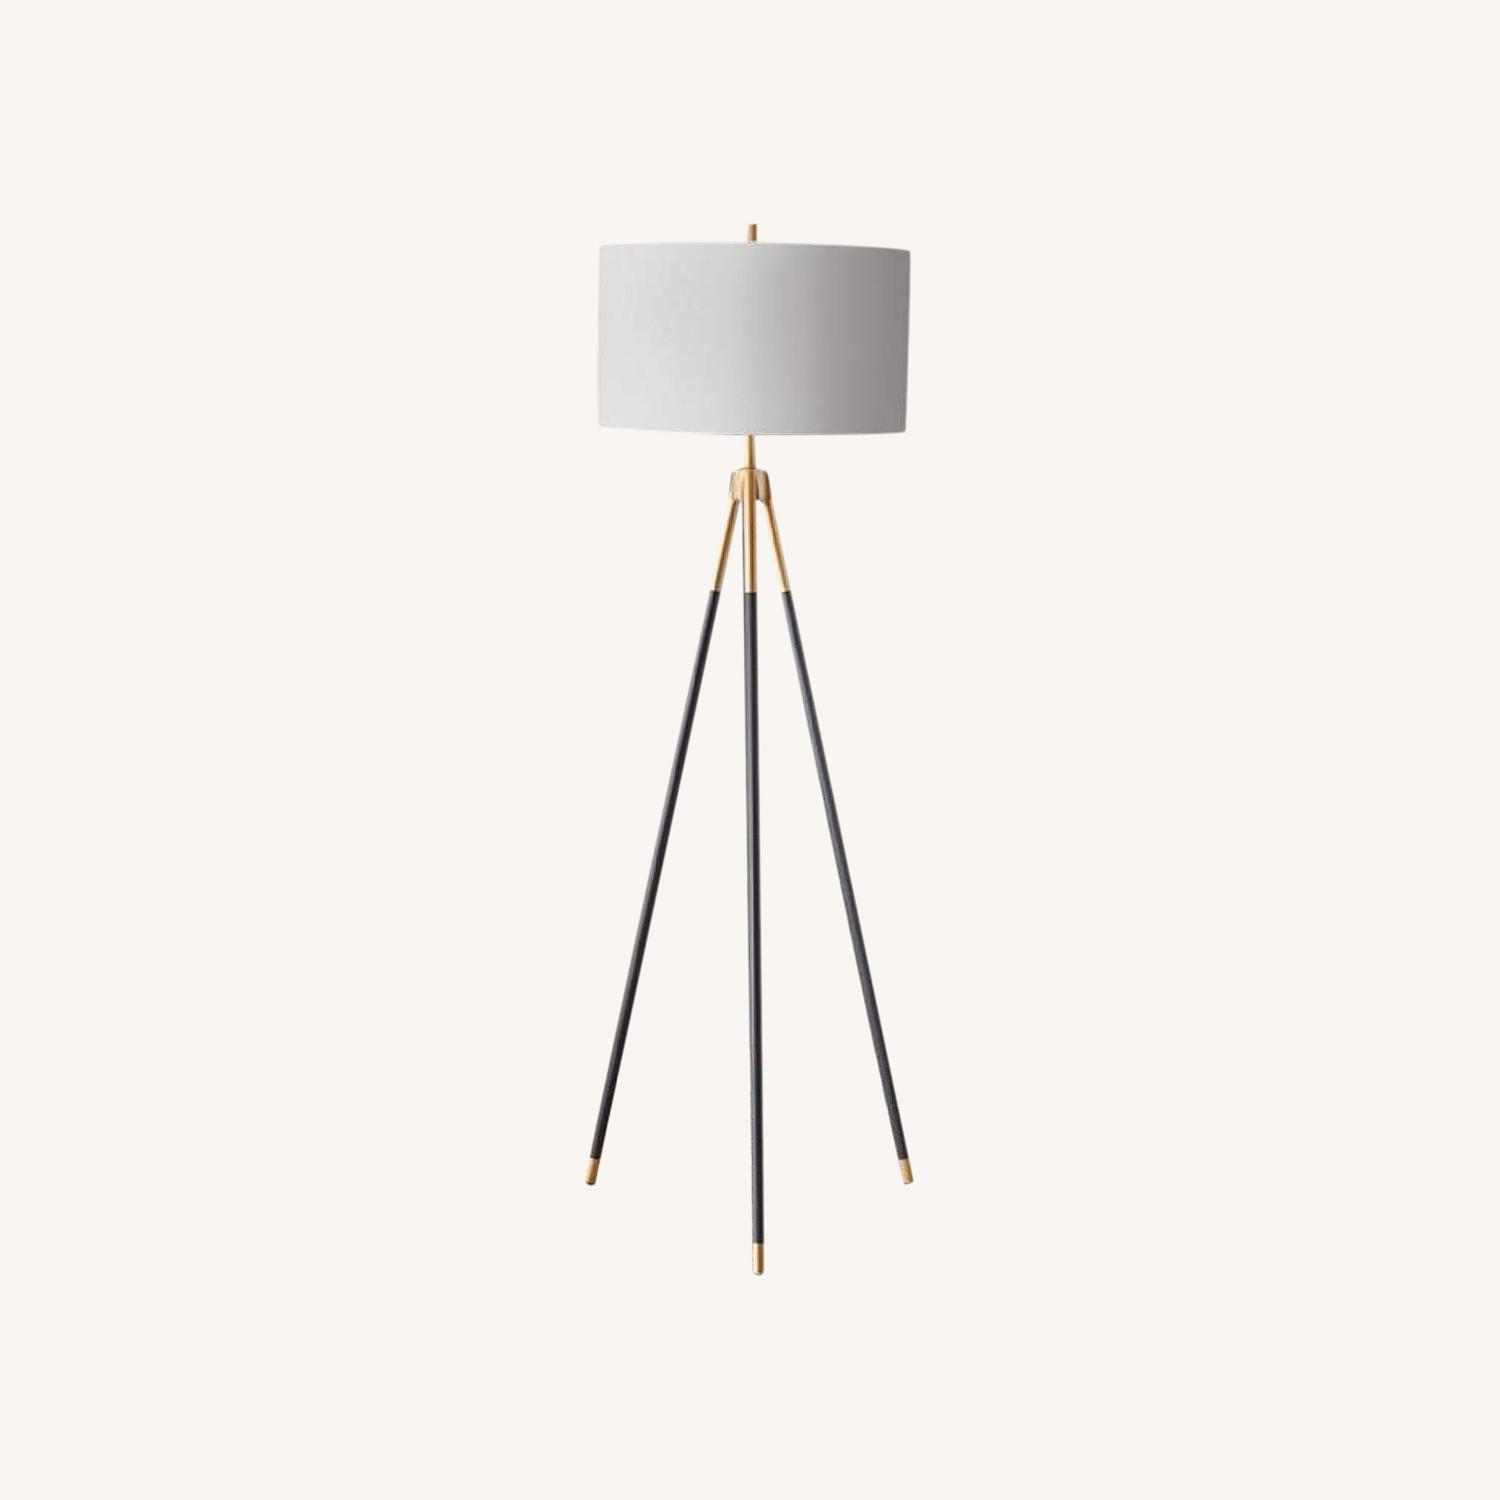 Rowe Furniture Black and Gold Tripod Floor Lamp - image-0